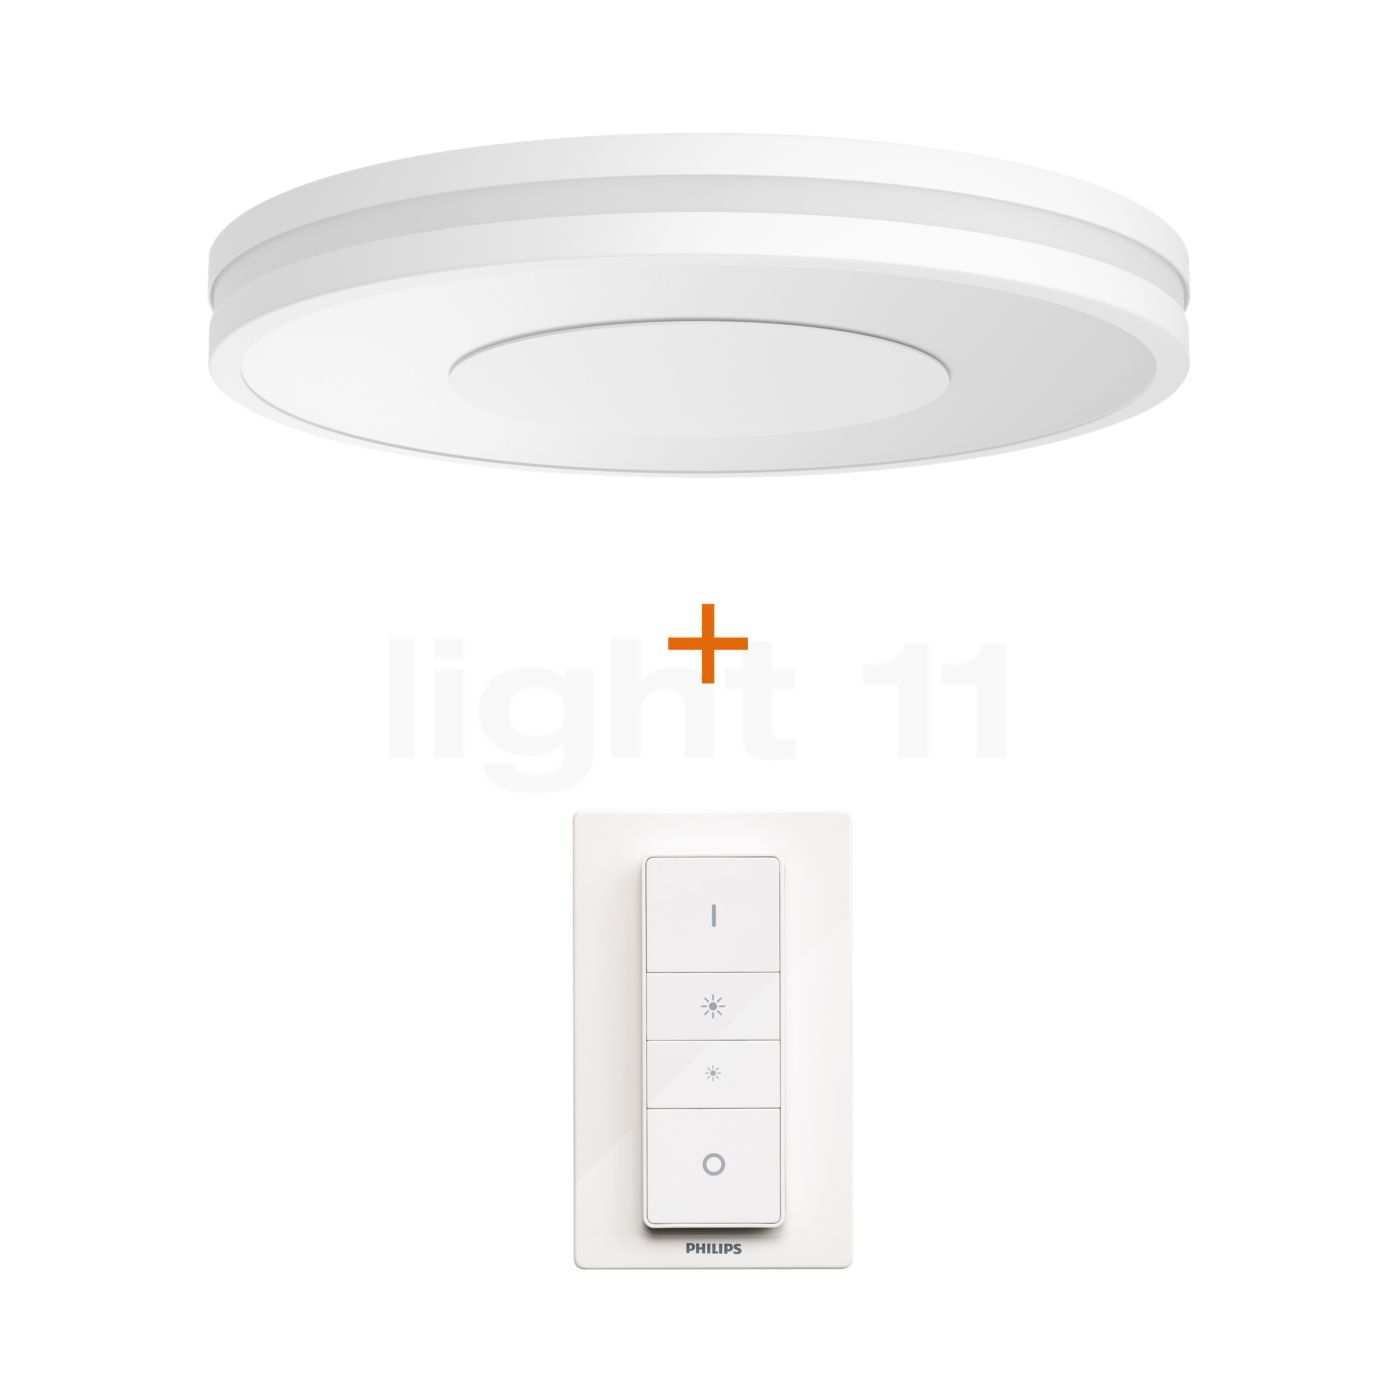 17a03e2f051 Buy Philips hue White Ambiance Being Ceiling Light at